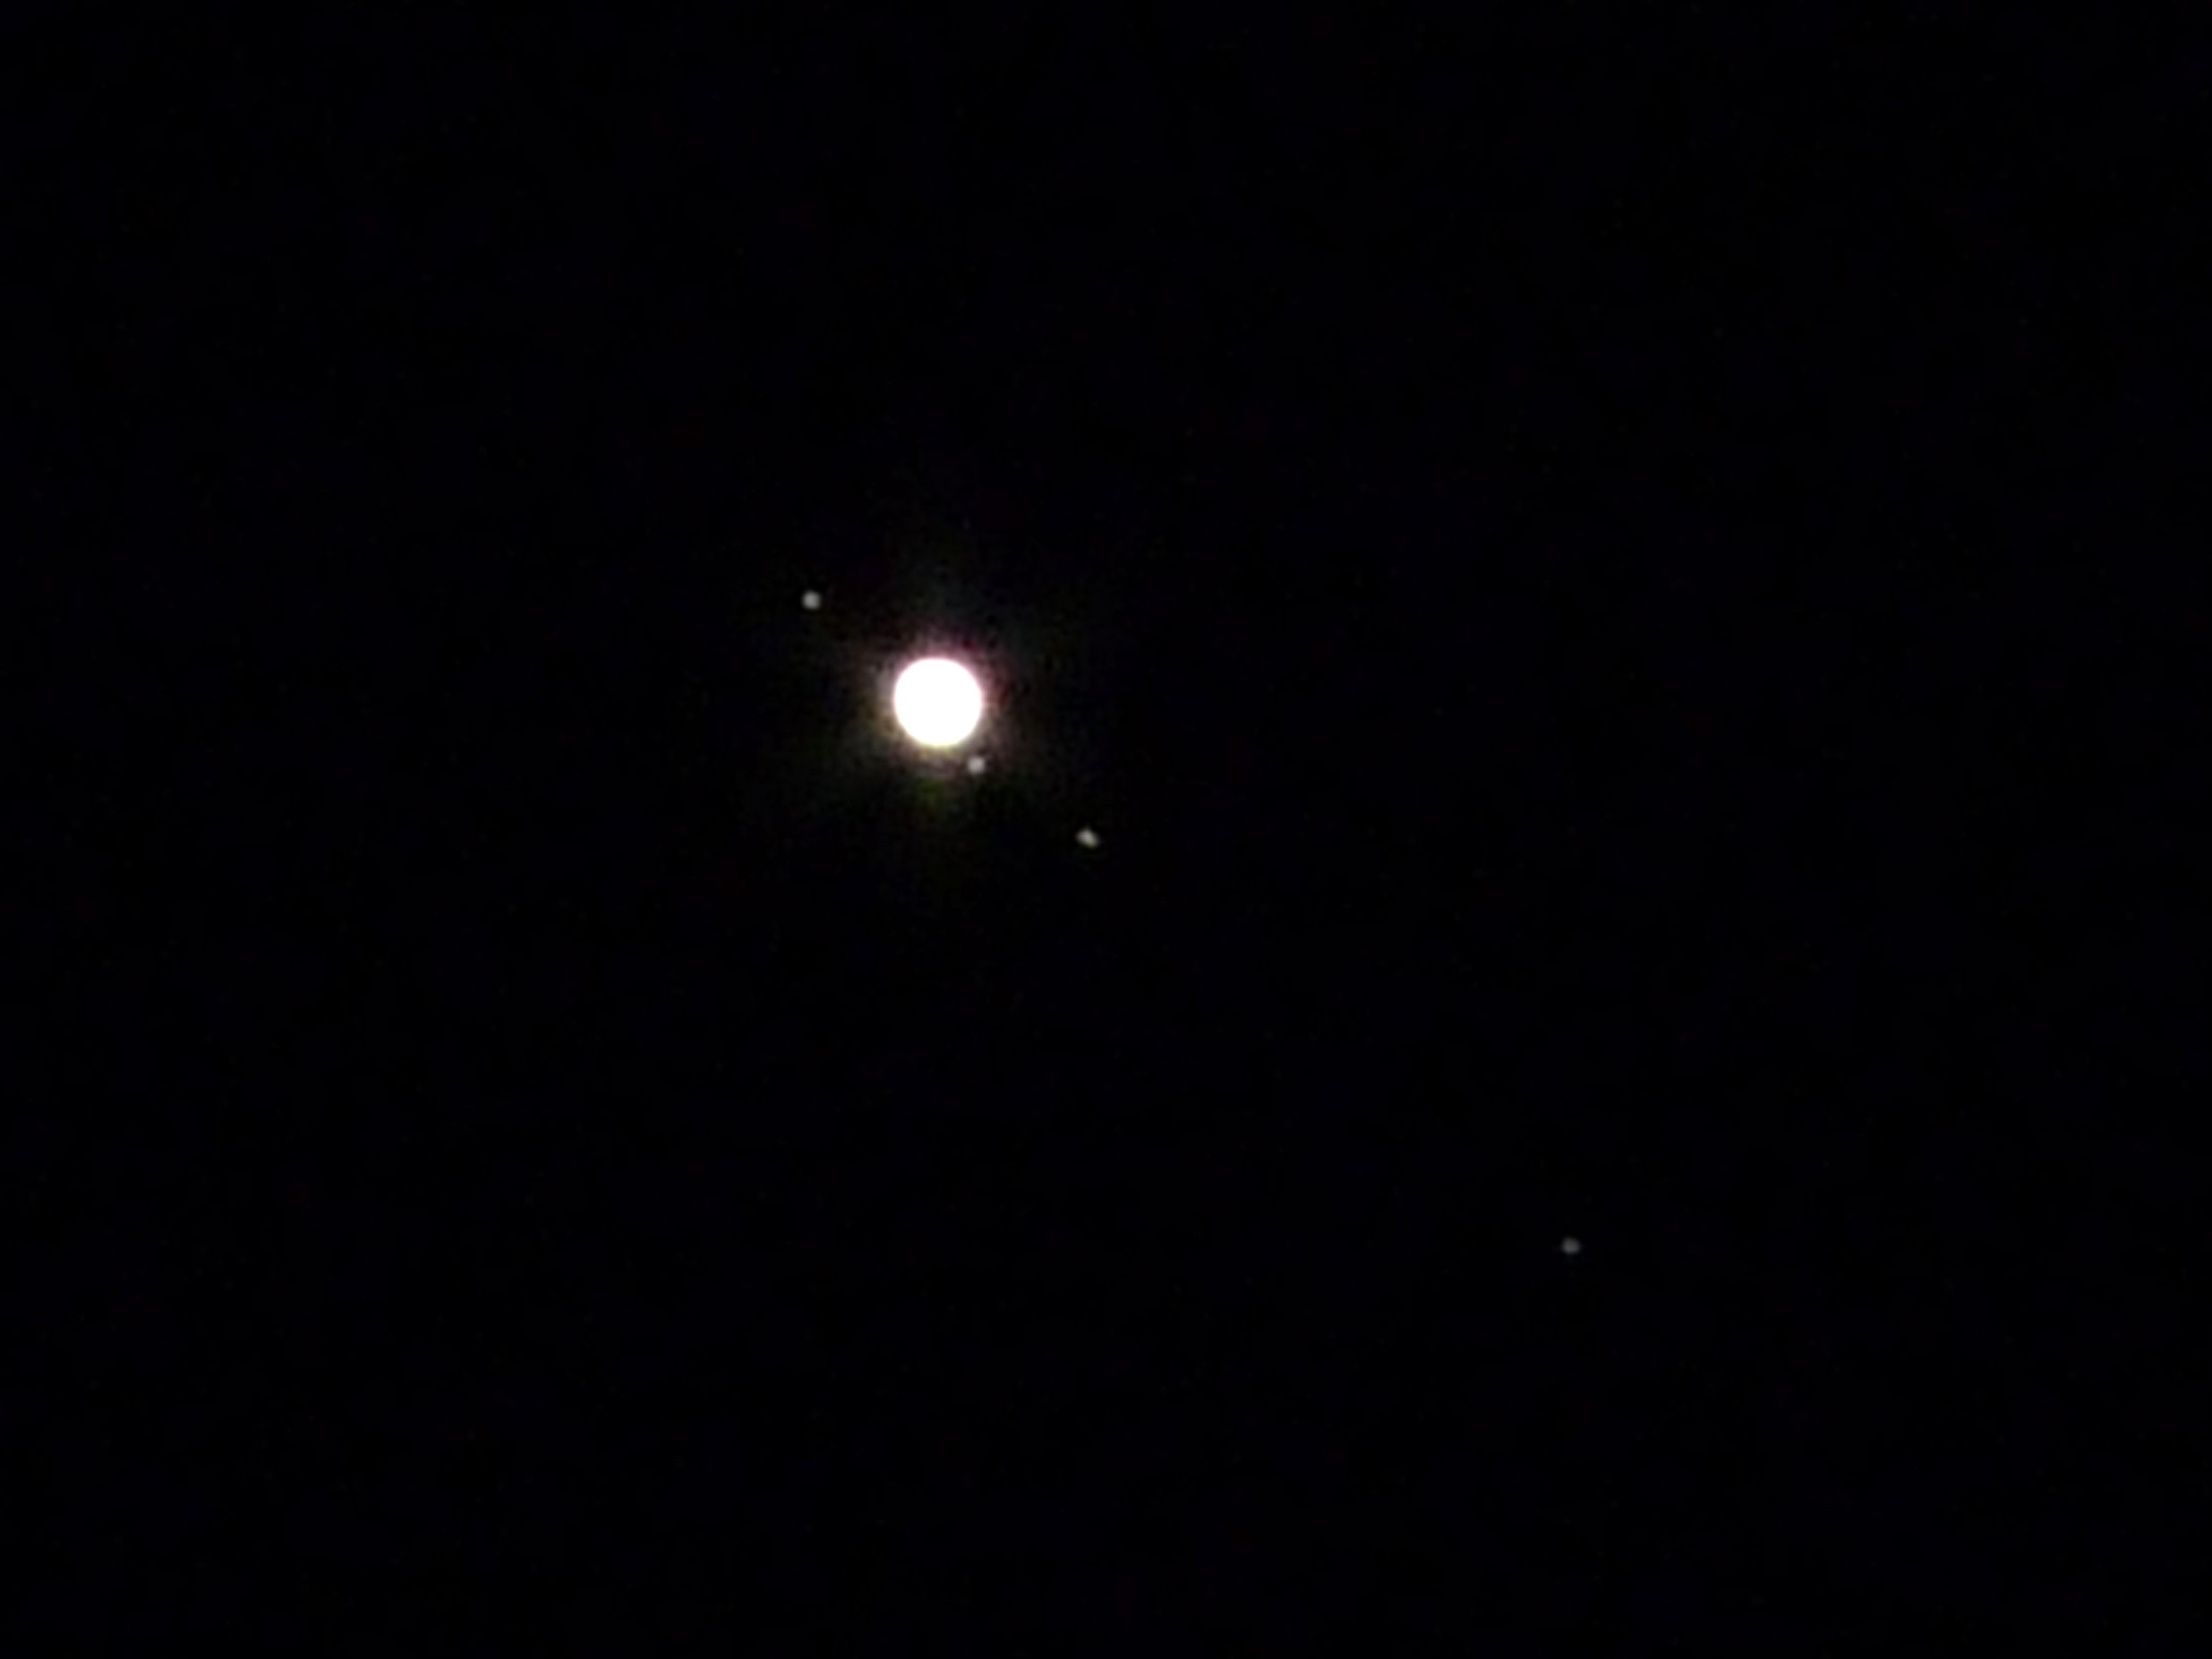 jupiter and its galilean moons essay The galilean moons, which we believe formed with jupiter go around jupiter they orbit jupiter in the same direction that jupiter spins and then we have two different outer kind of groups.